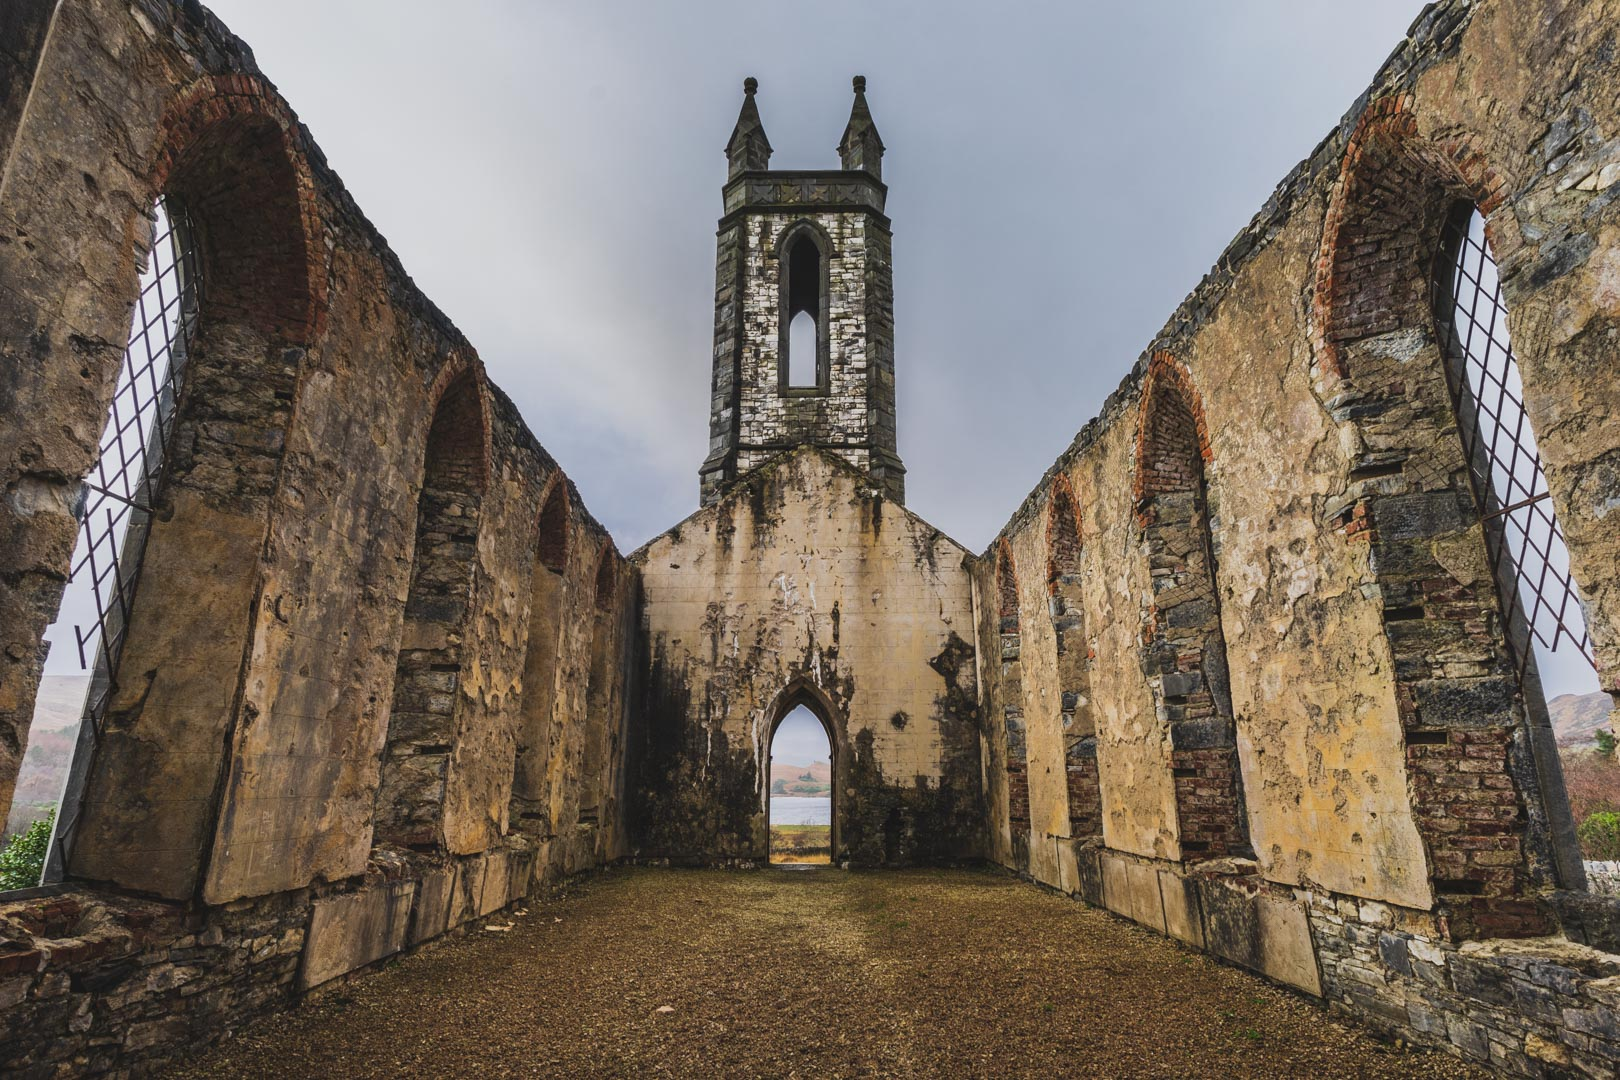 inside the ruins of an old irish church